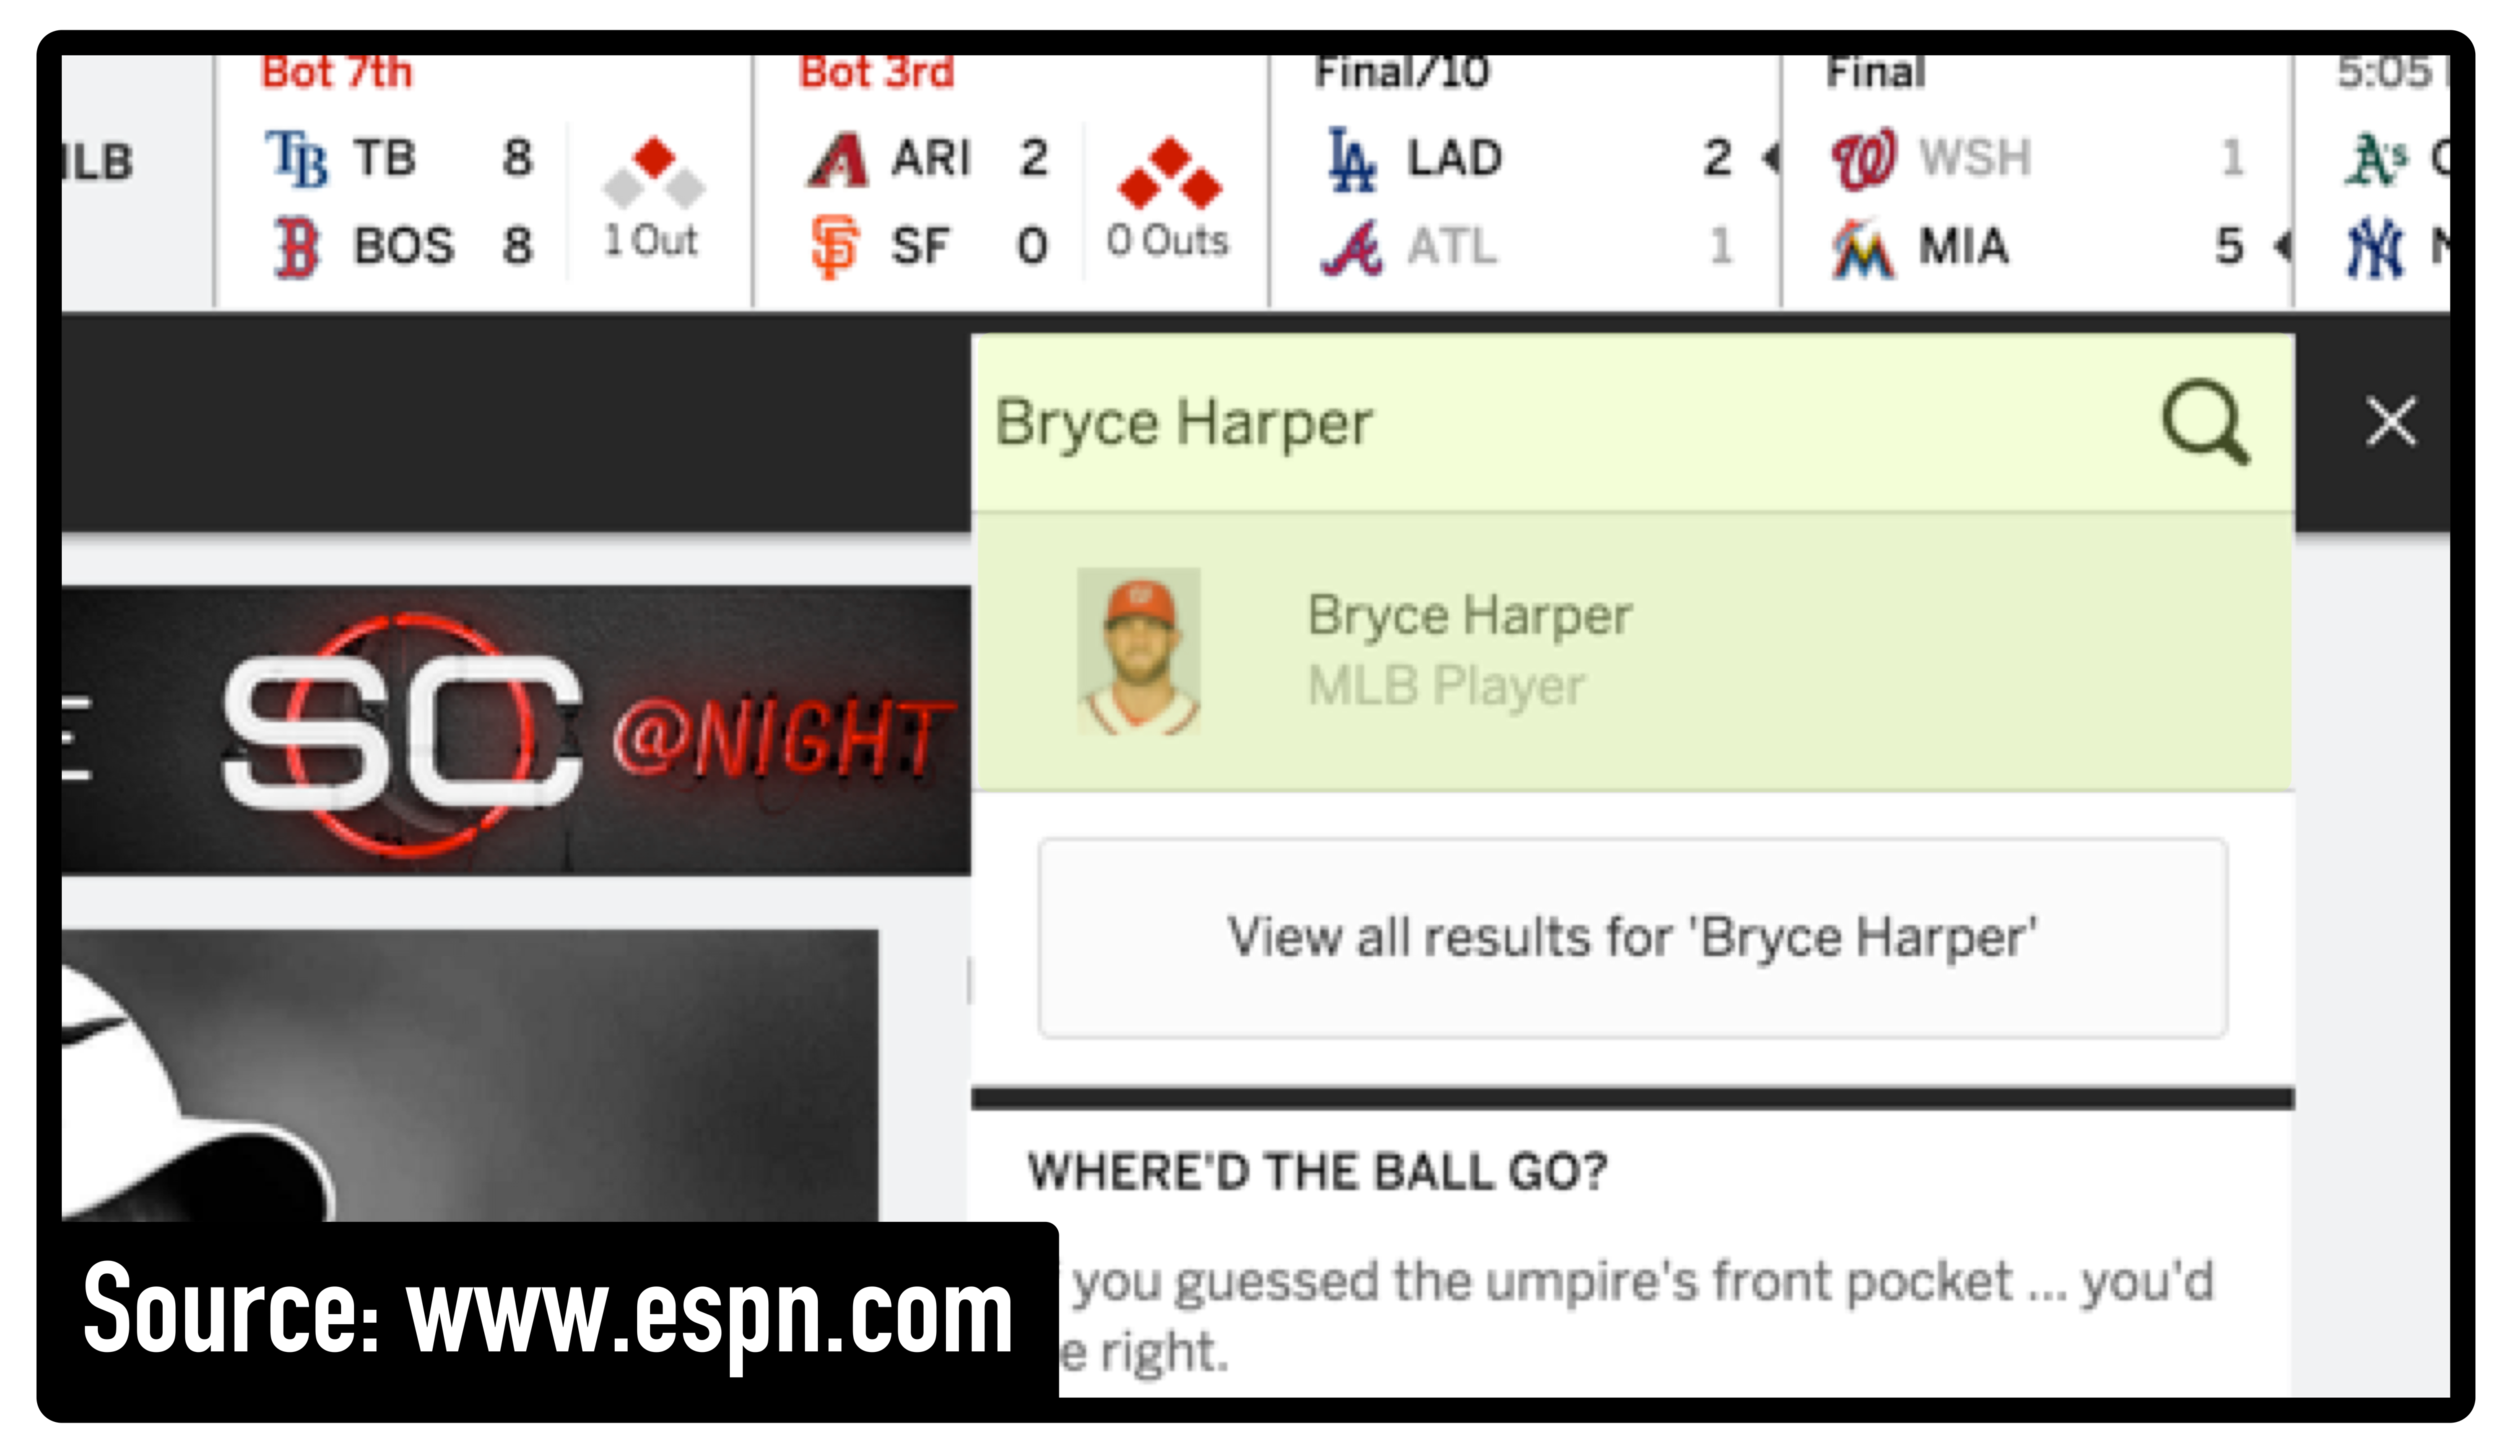 To access a player's statistical profile, type his or her name into the search box on ESPN.com.